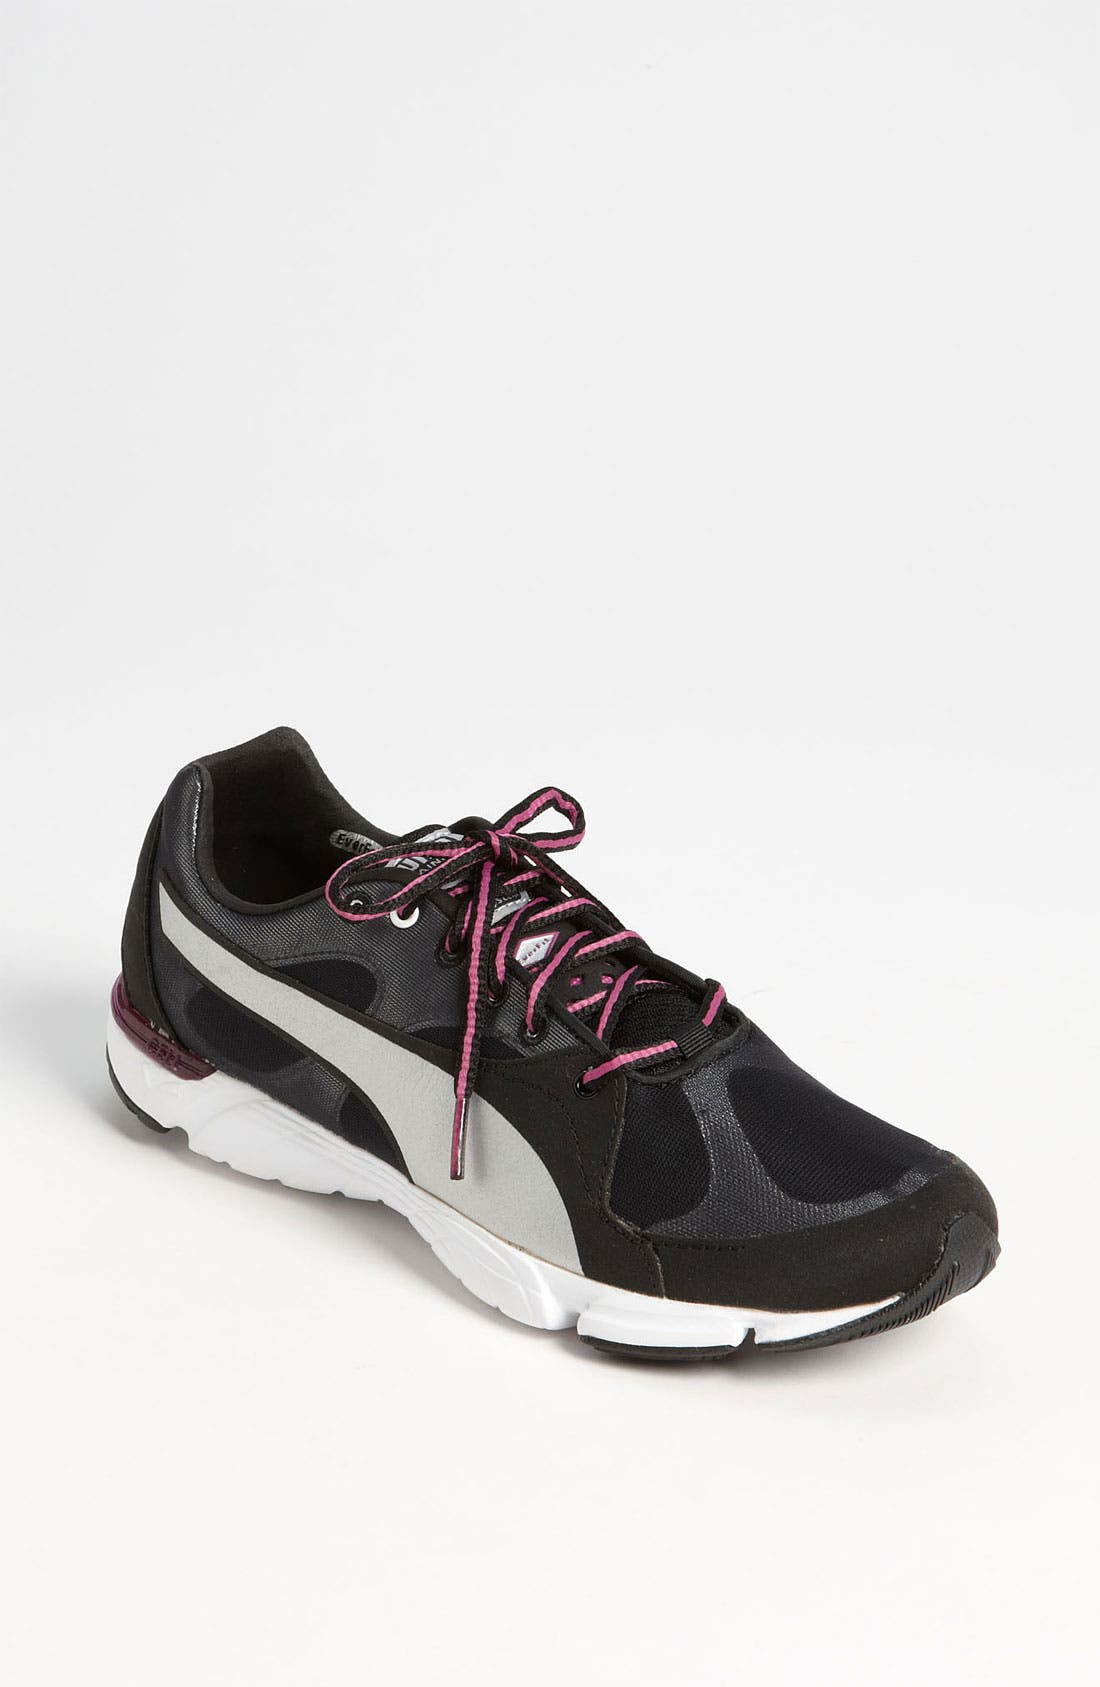 Alternate Image 1 Selected - PUMA 'Formlite XT' Sneaker (Women)